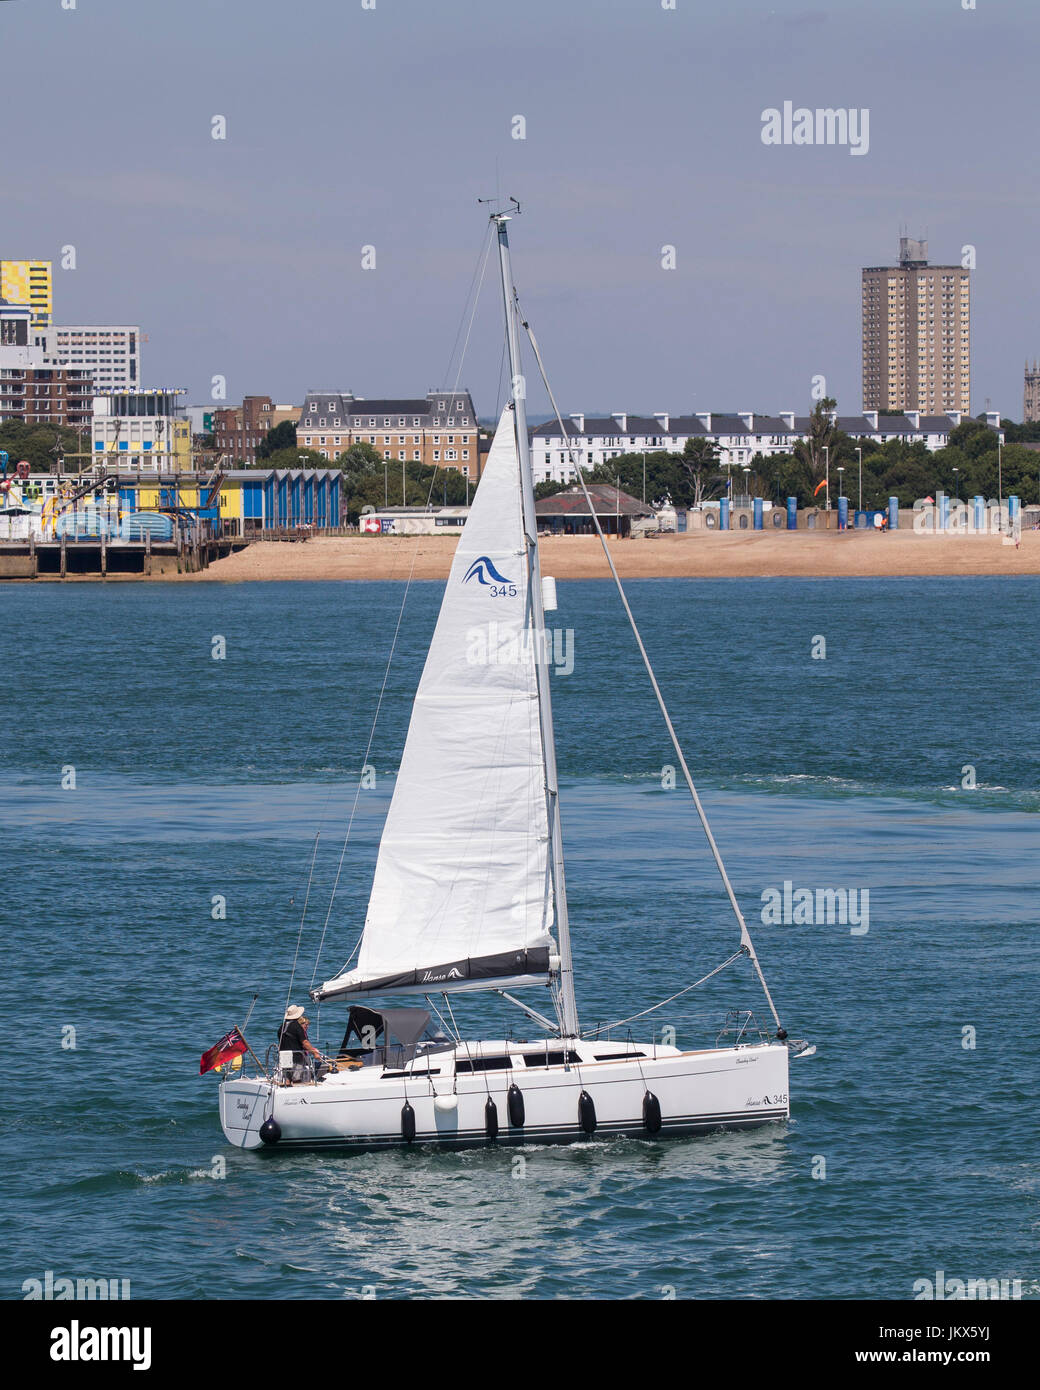 Hansa 345 yacht 'Cheeky Vins' sailing in Spithead - Stock Image